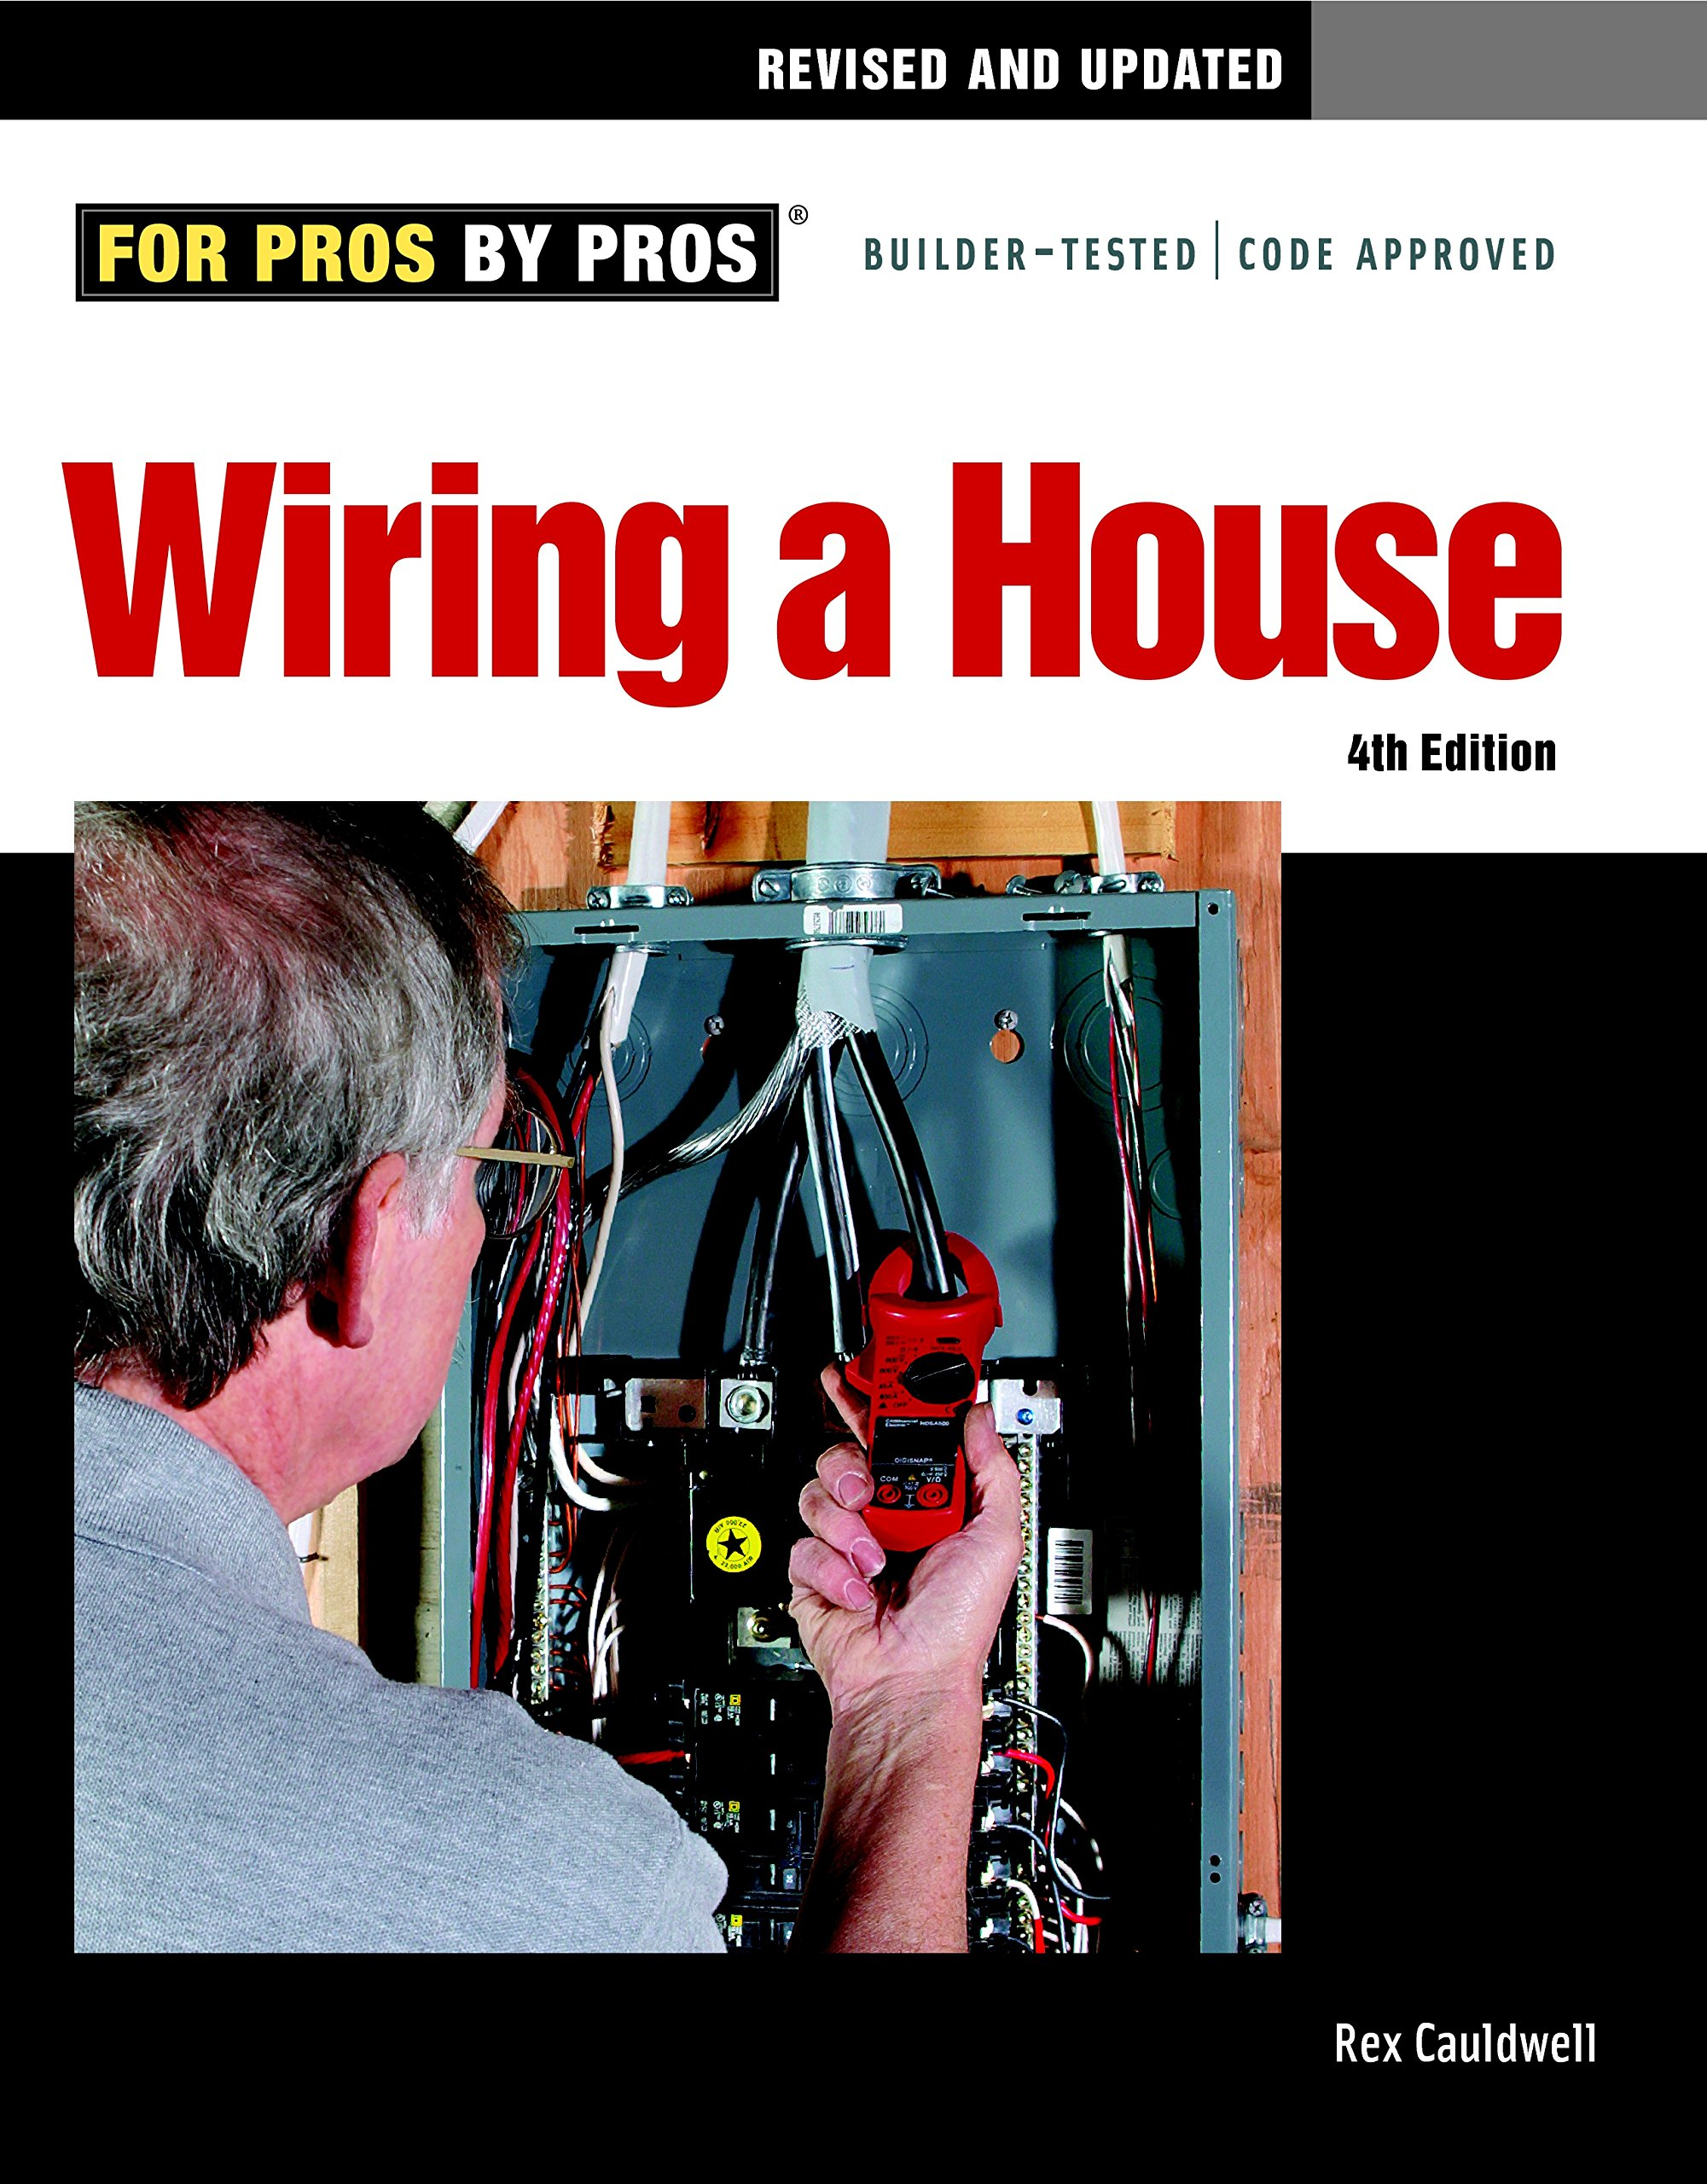 wiring a house 4th edition for pros by pros rex cauldwell rh amazon com rex cauldwell wiring a house 4th edition wiring a house rex cauldwell pdf